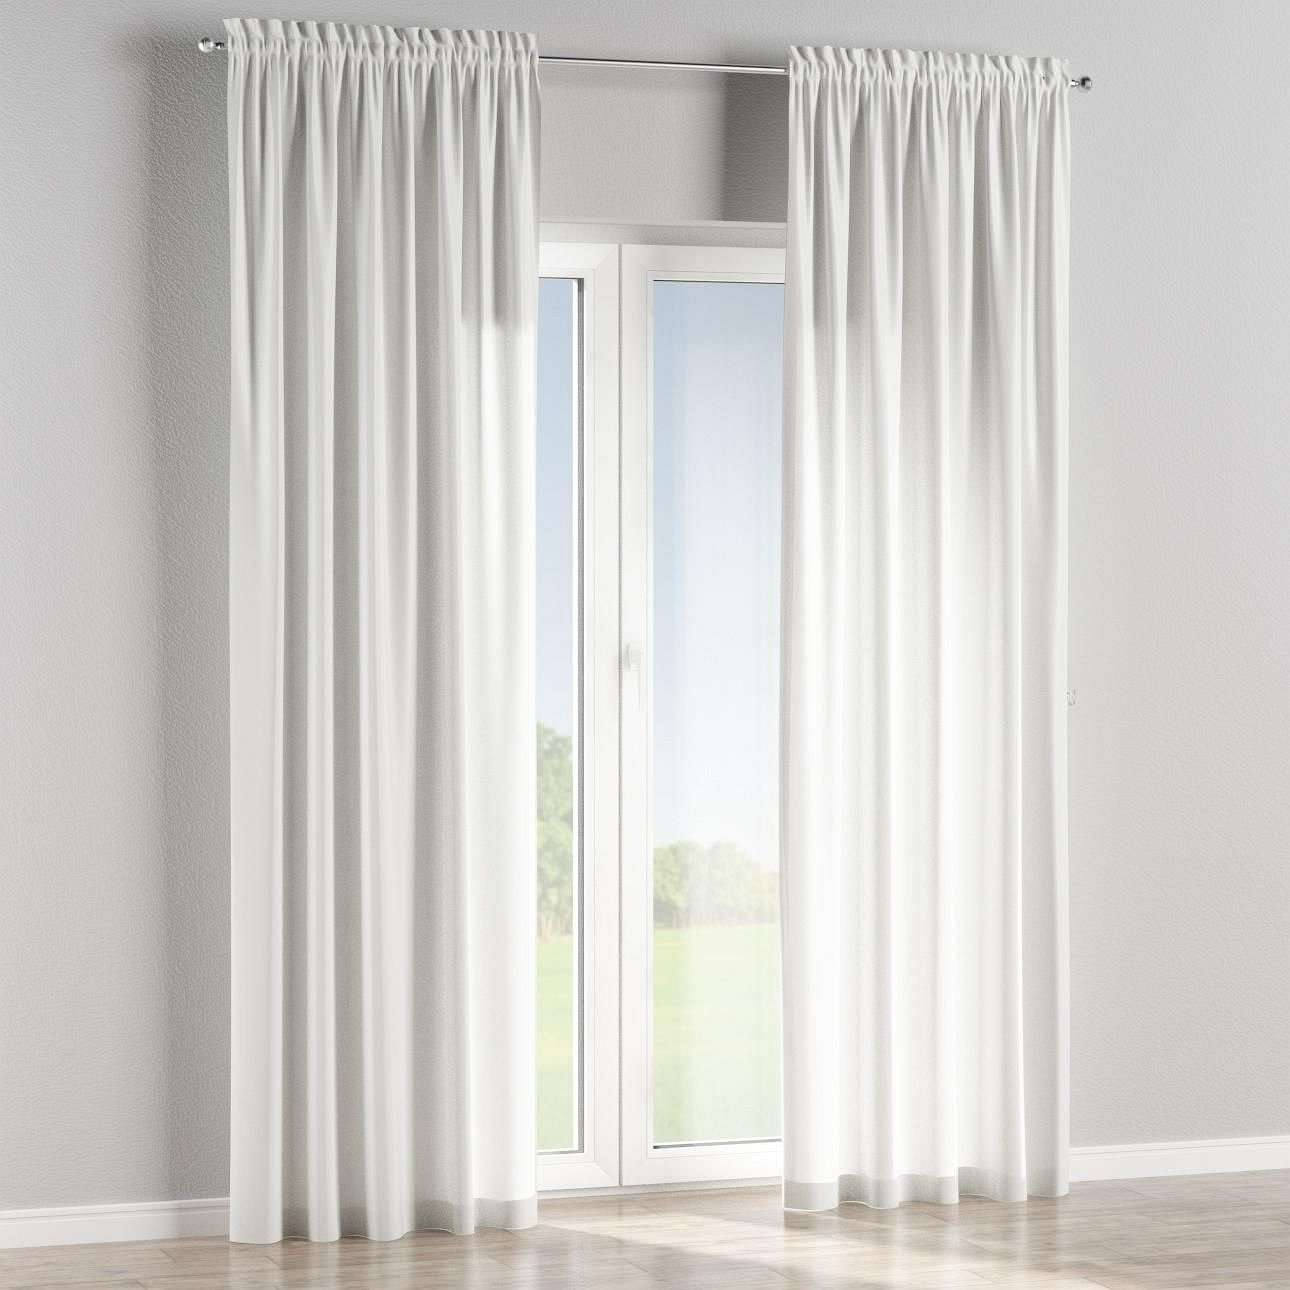 Slot and frill lined curtains in collection Bristol, fabric: 126-09